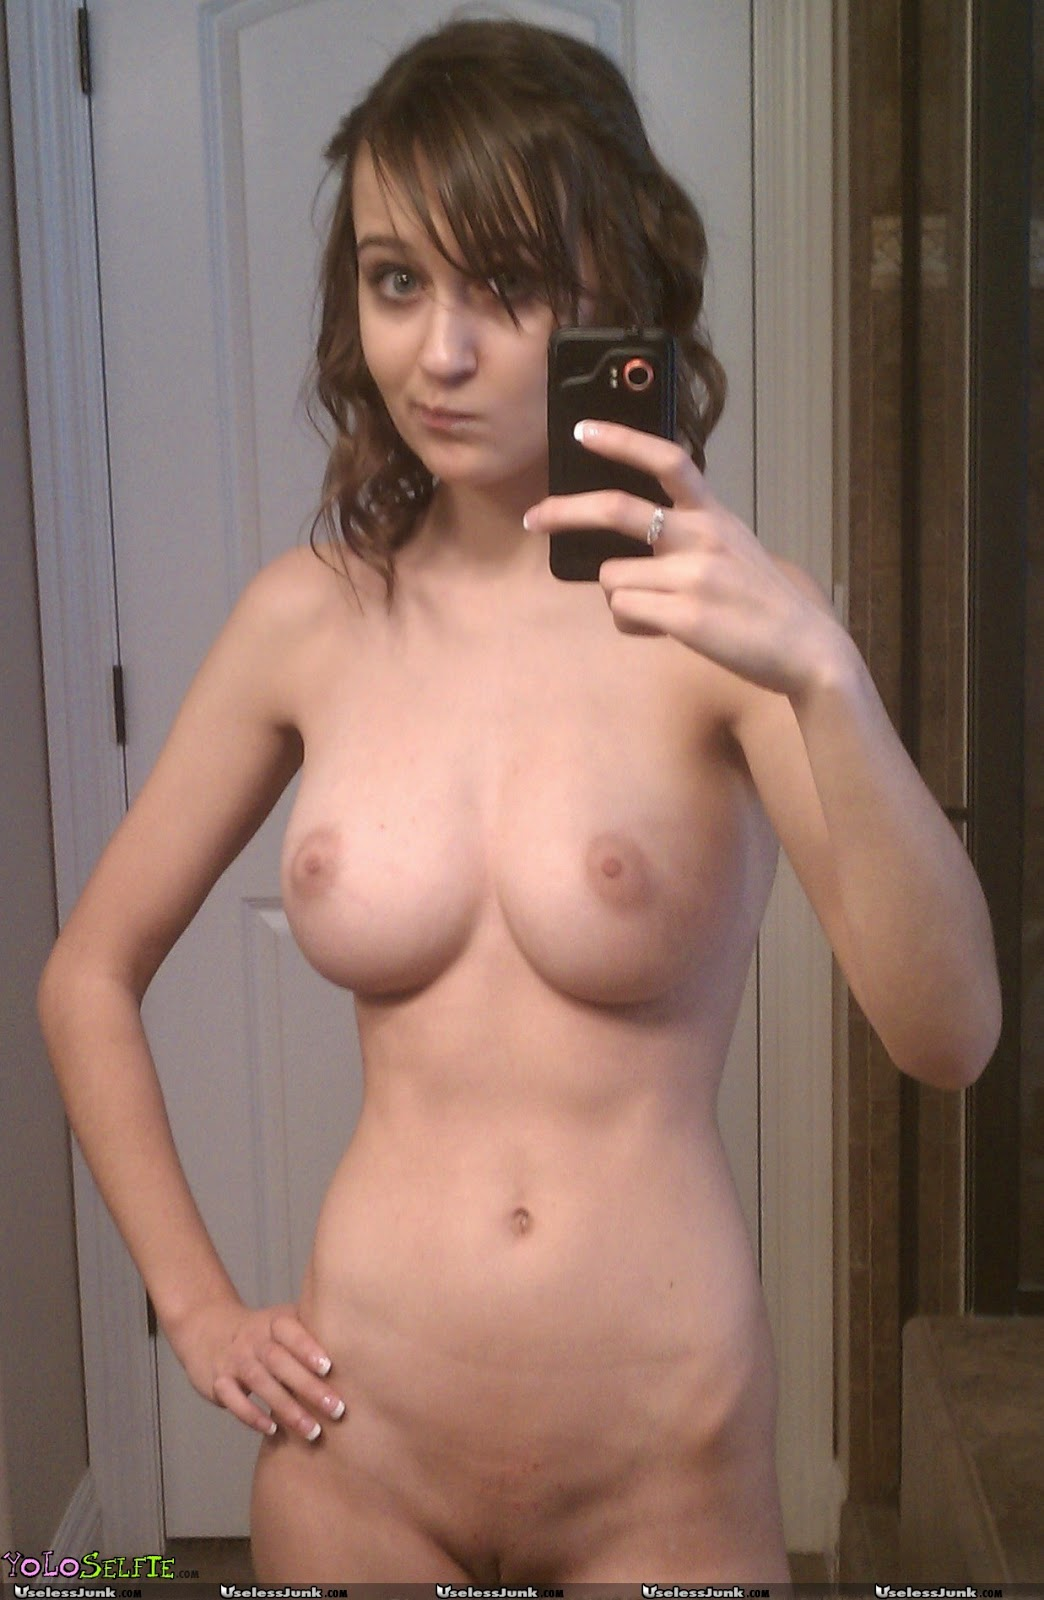 sexy naked women self photo